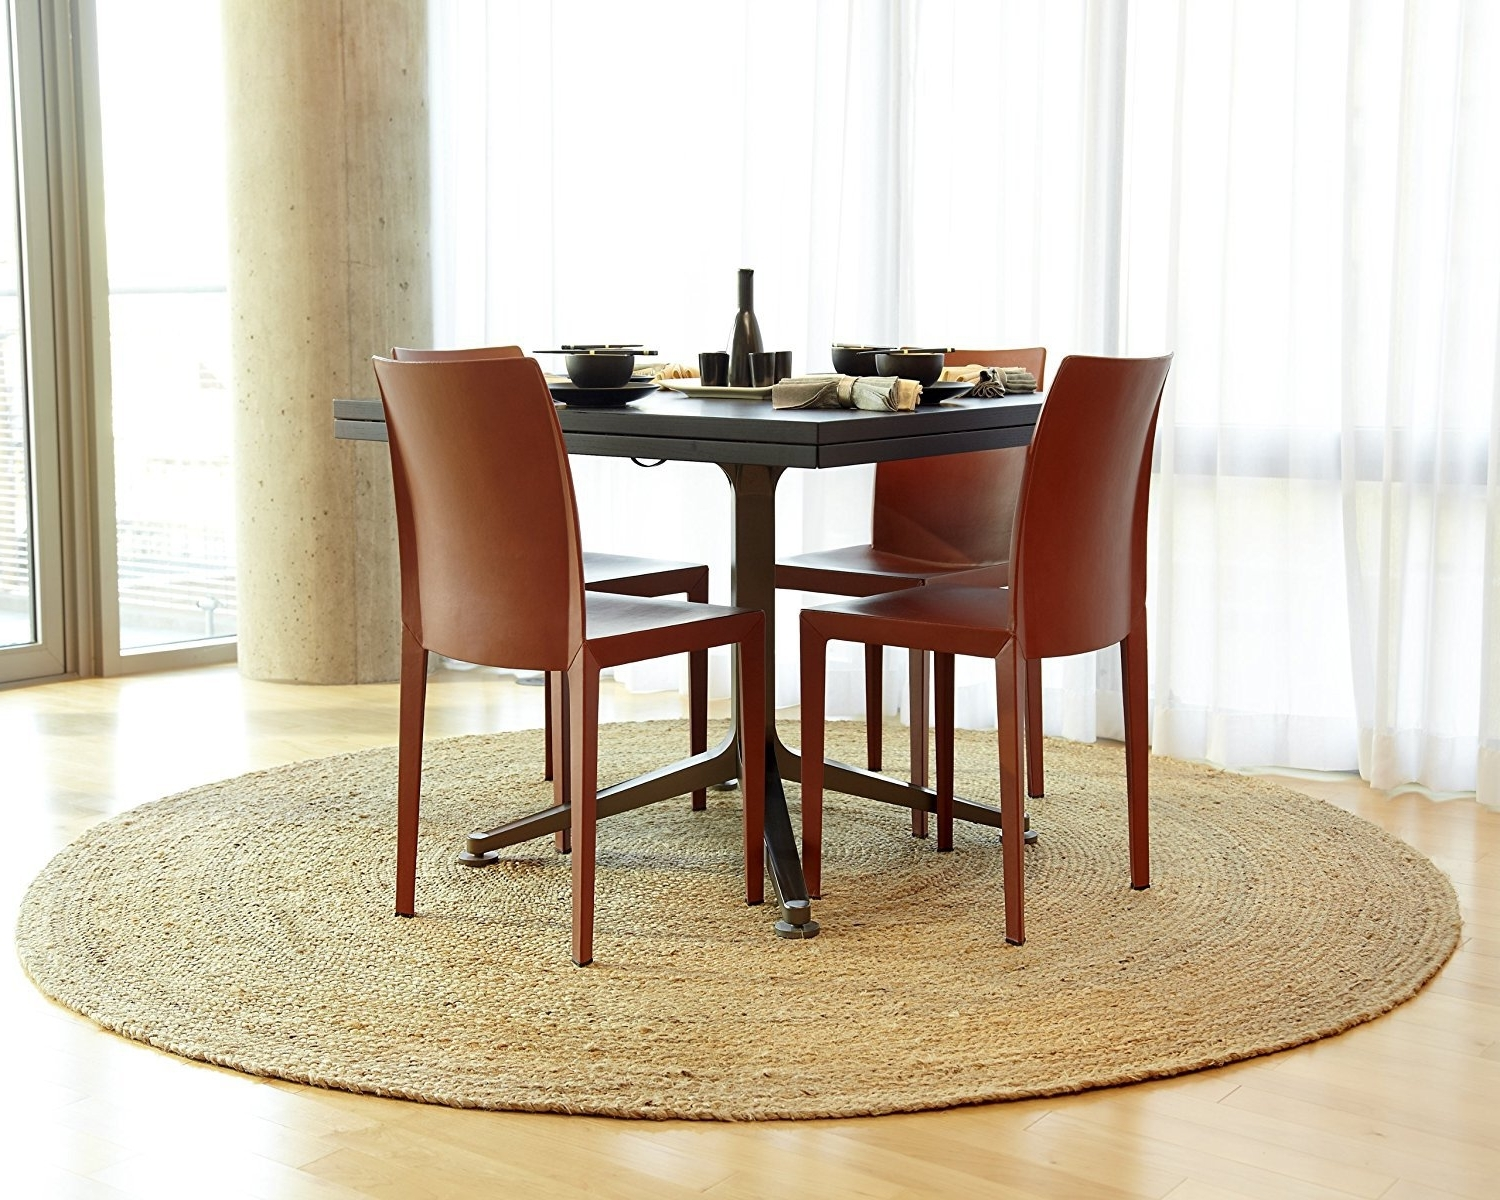 Caden Round Dining Tables Intended For Most Current Gray Decor Round Seagrass Rug Room Design Casual Motif Seagrass Rug (View 21 of 25)